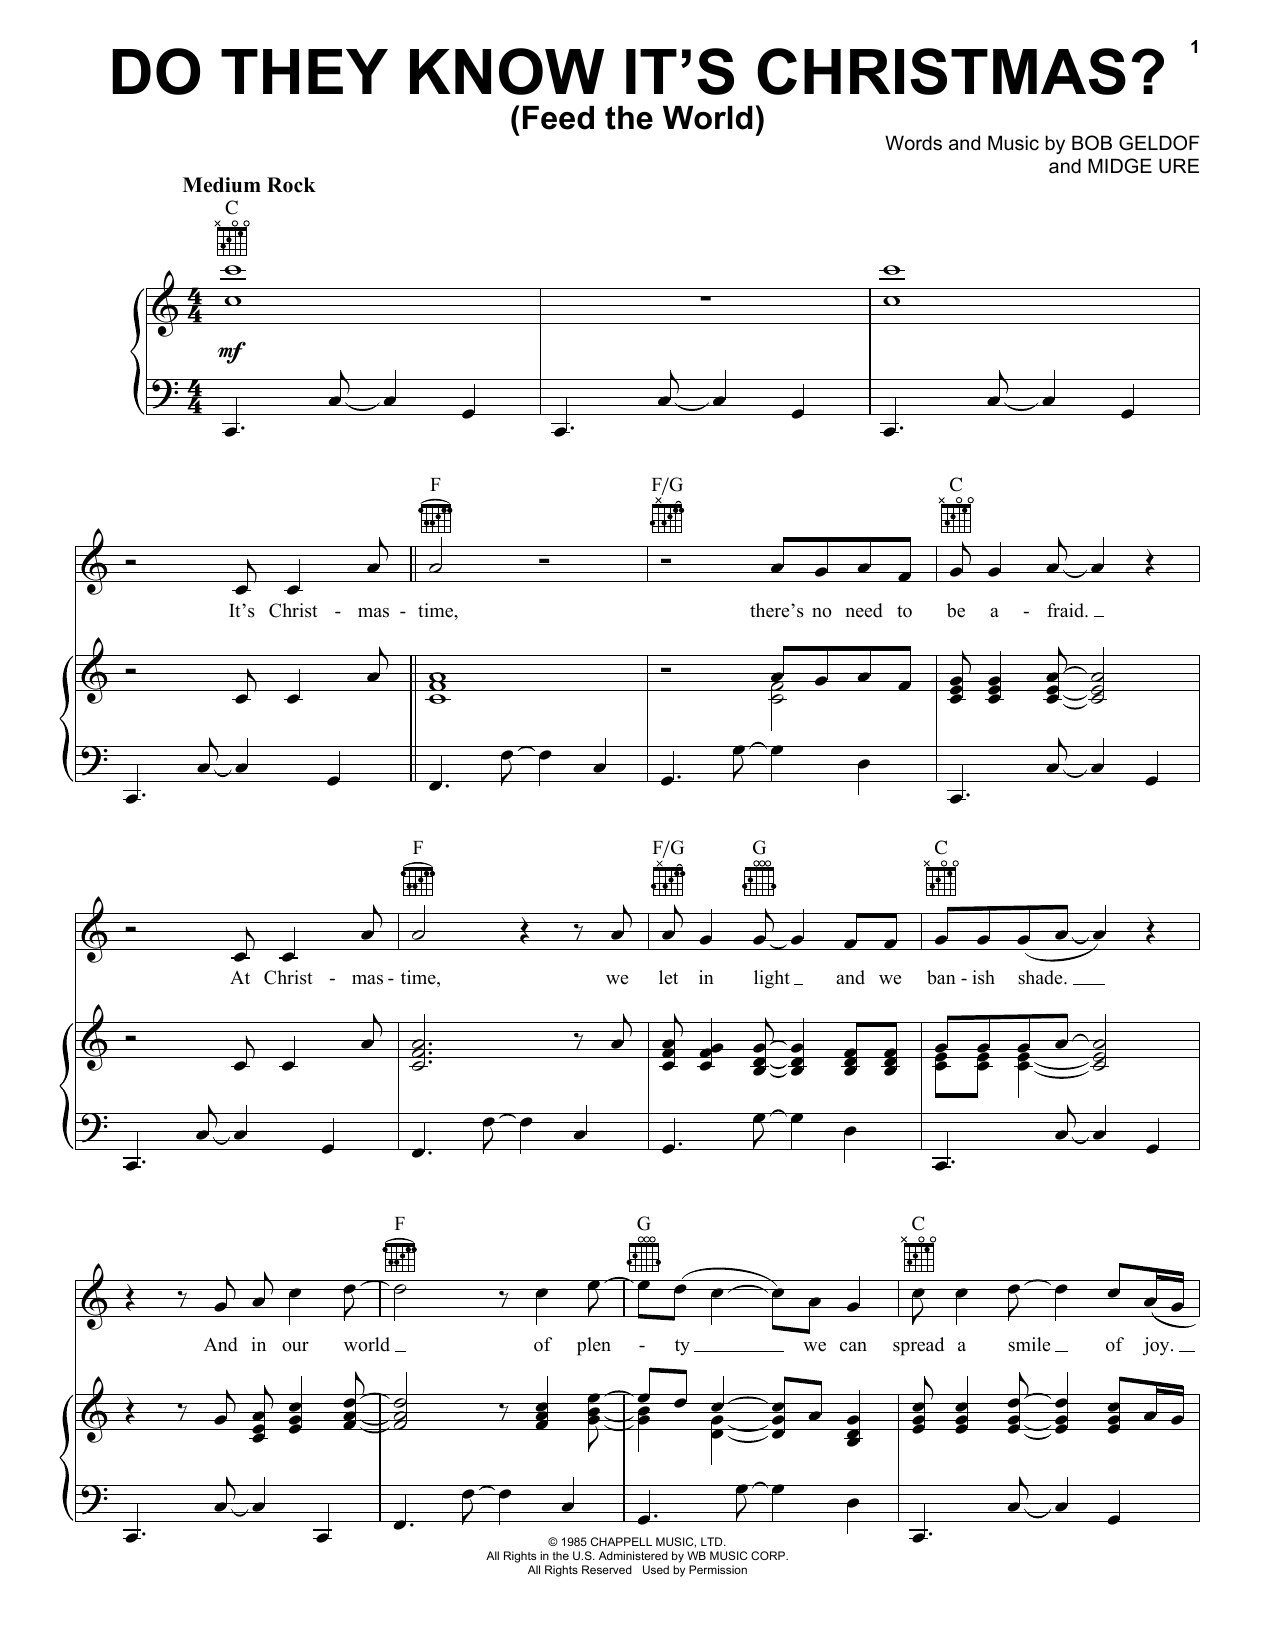 Band Aid Do They Know It's Christmas? sheet music notes and chords. Download Printable PDF.